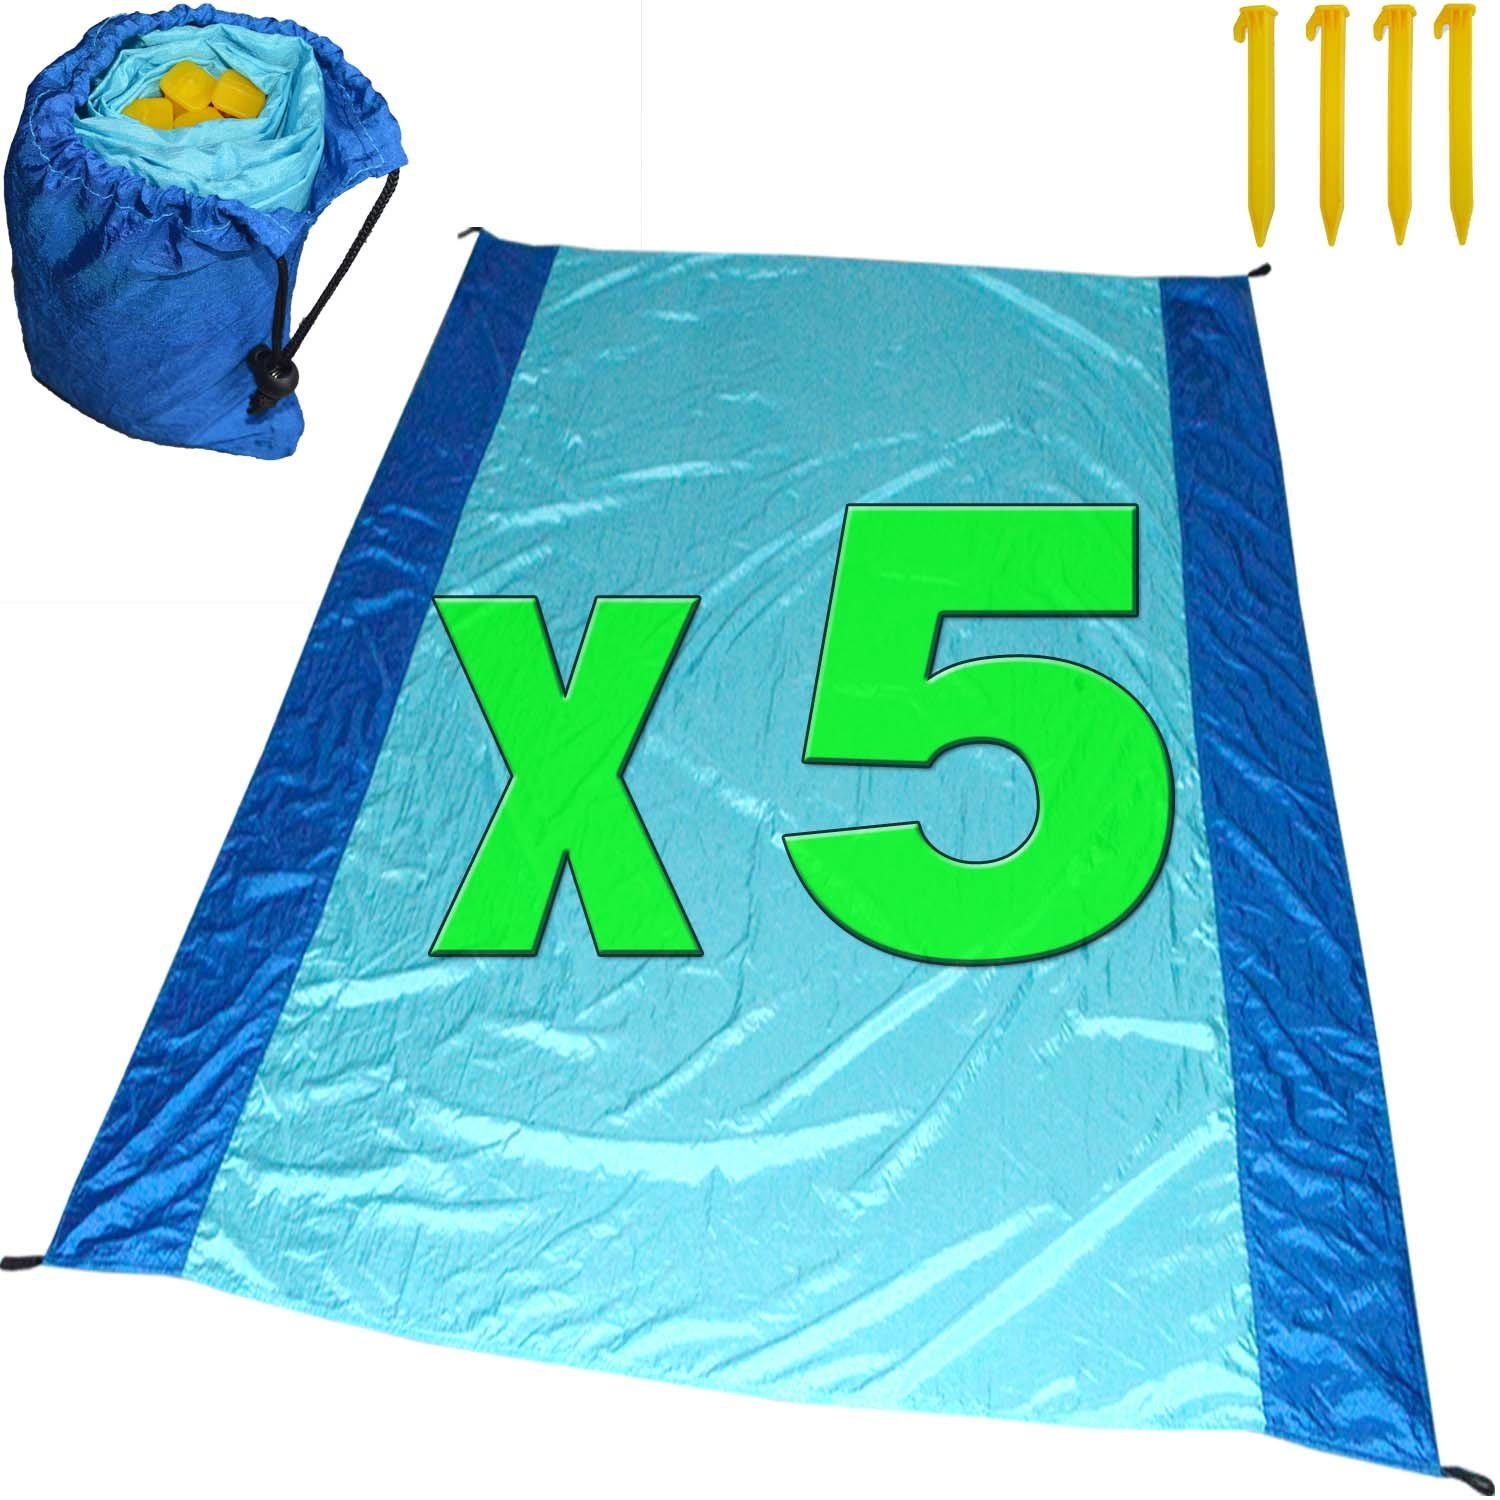 [Pack of 5] Sand Proof Beach Picnic Blanket of Parachute Nylon, works as Shade Tarp Sheet for your Sandless travel escape perfect for drying towel not a black microfiber waterproof or resistant mat by Spencer&Webb (Image #1)